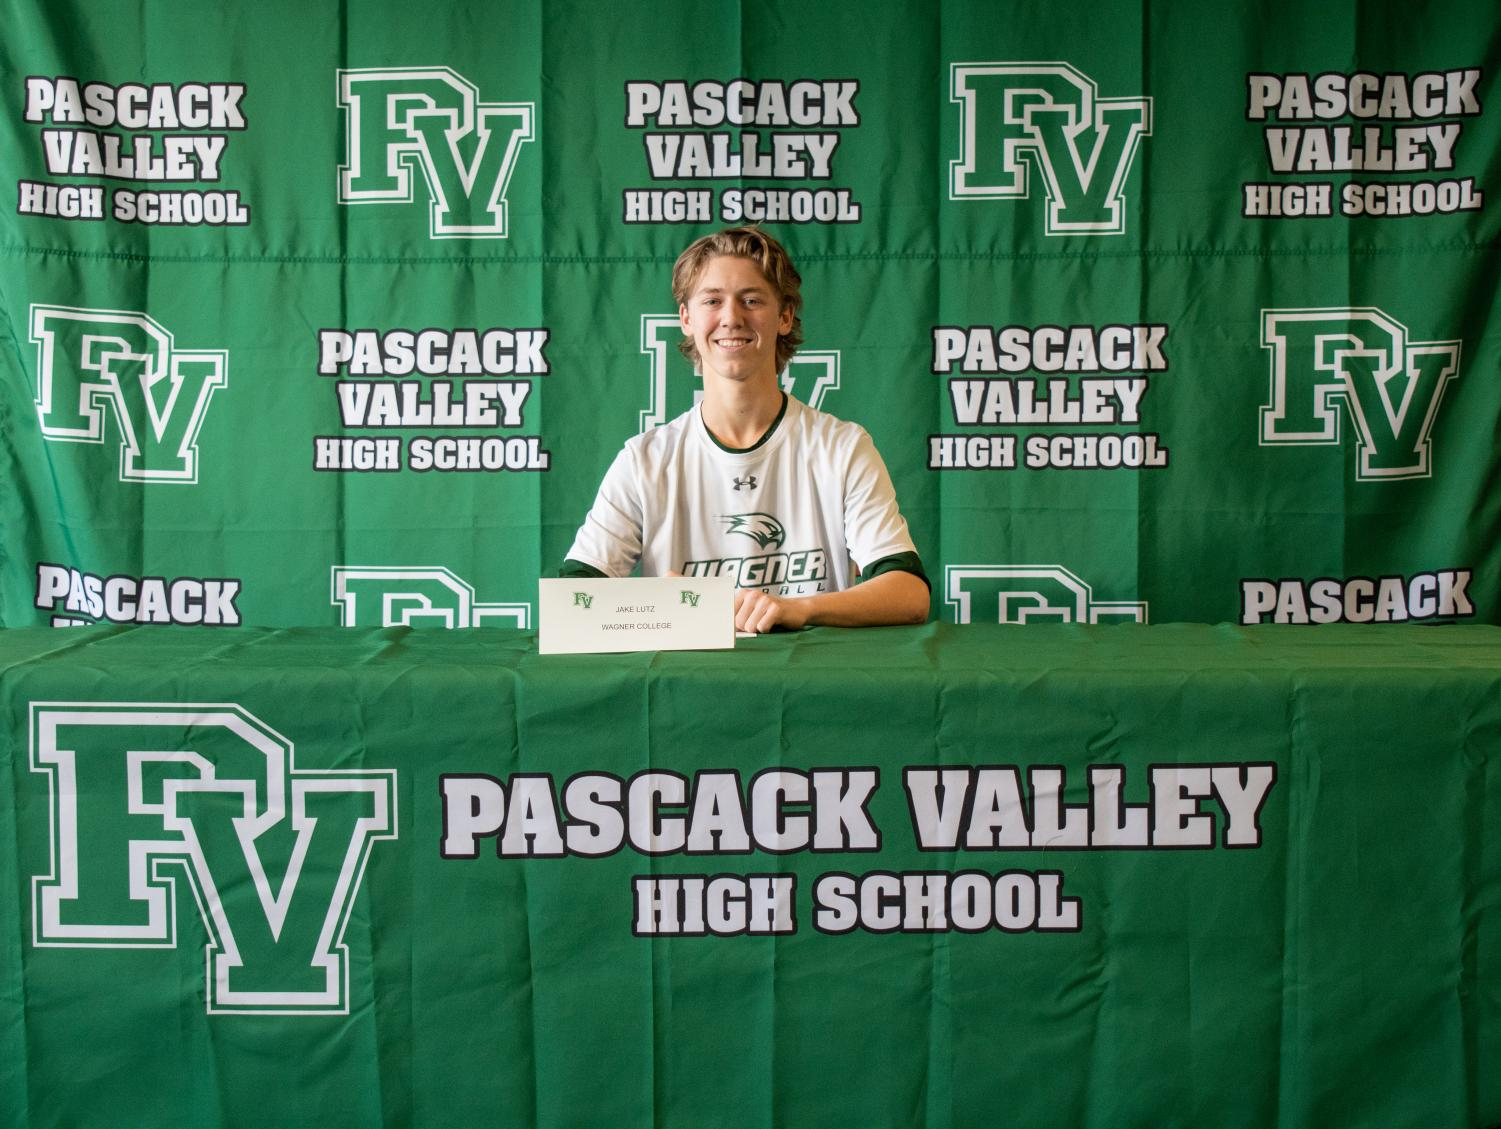 Jake Lutz signs to Wagner University to play Division I baseball.